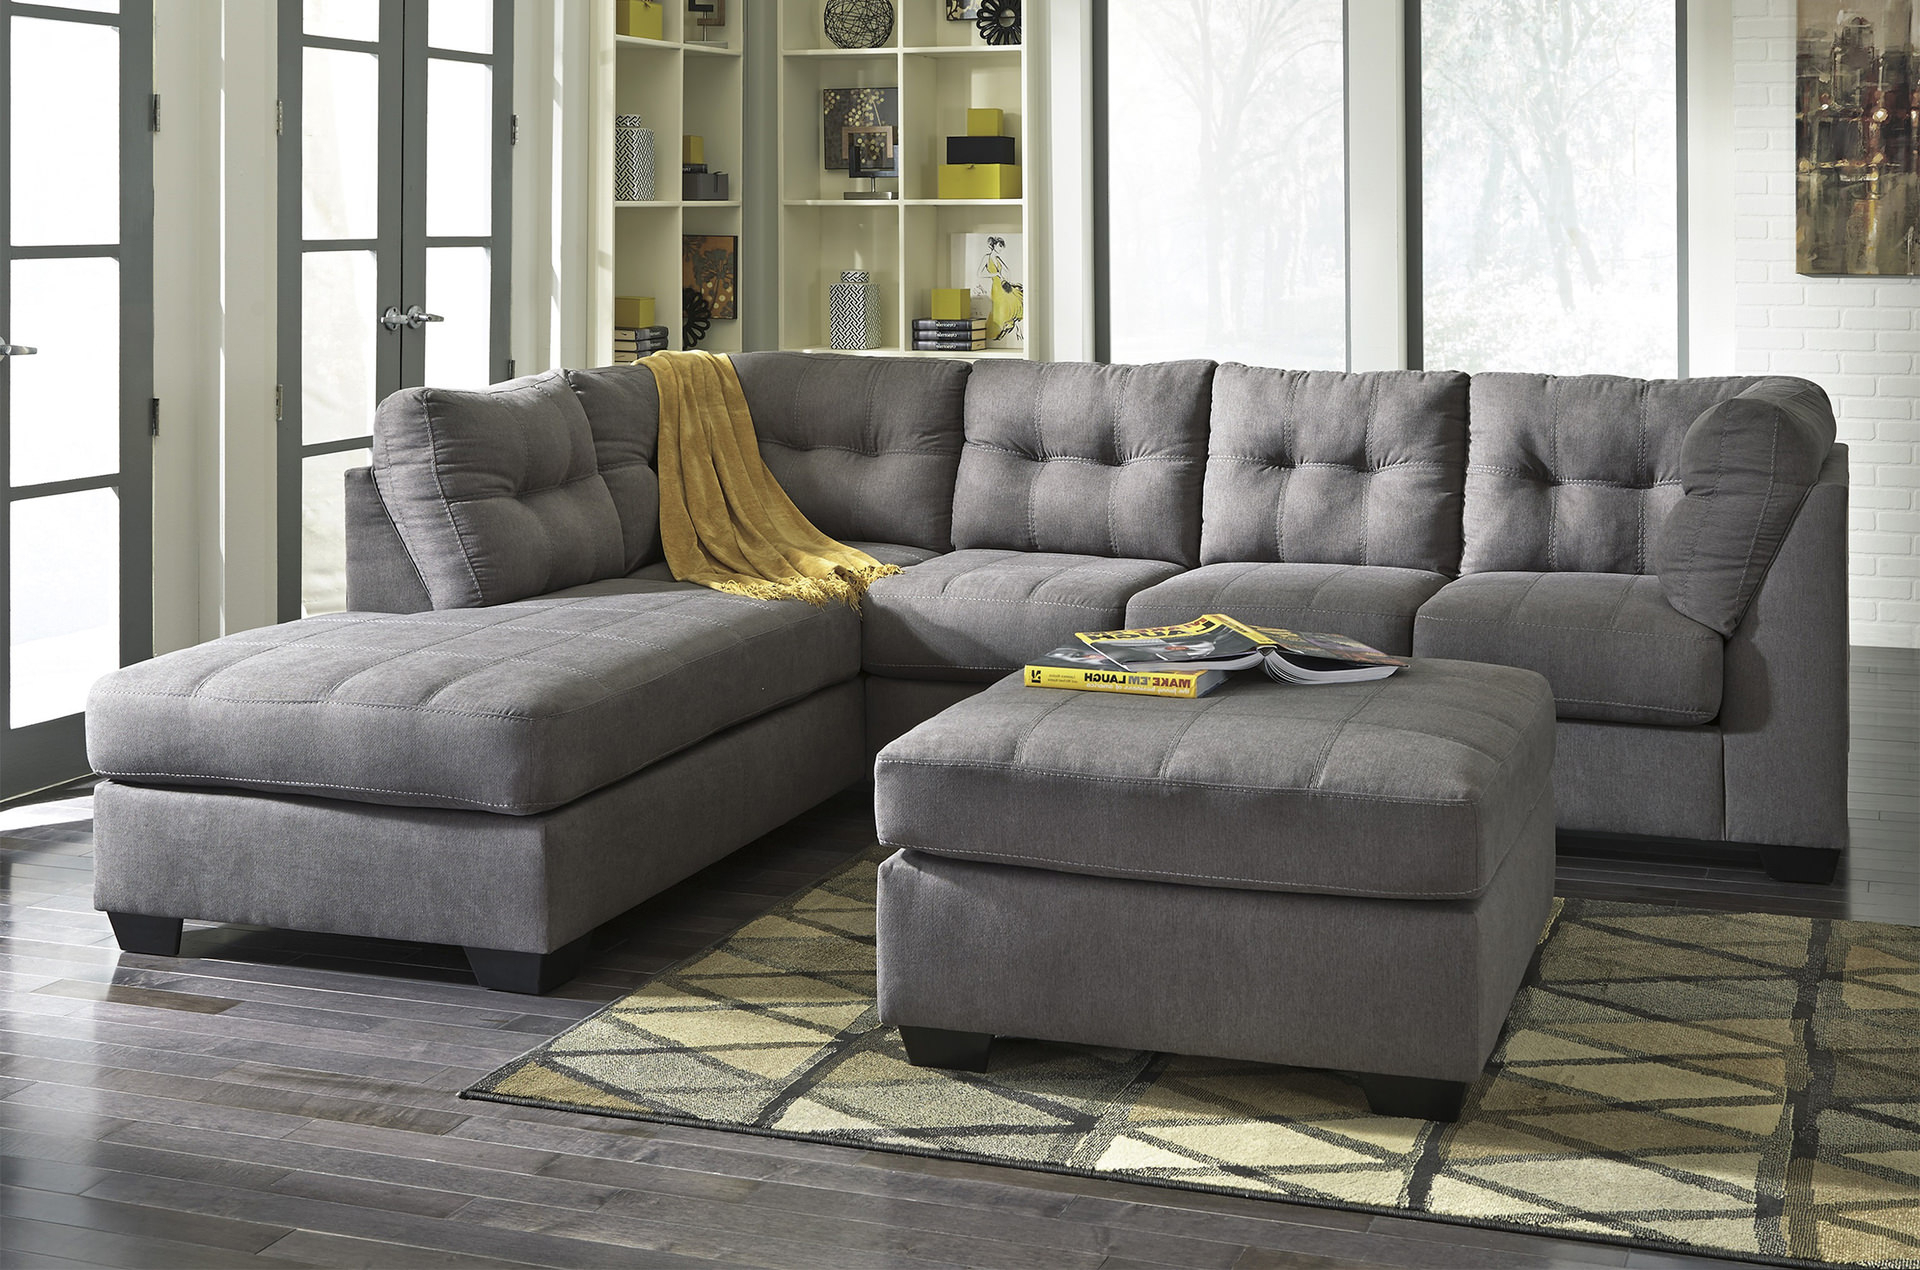 Newest Malbry Point 3 Piece Sectionals With Raf Chaise In Sectional Matters – Design Bloghom Furniture (View 15 of 20)